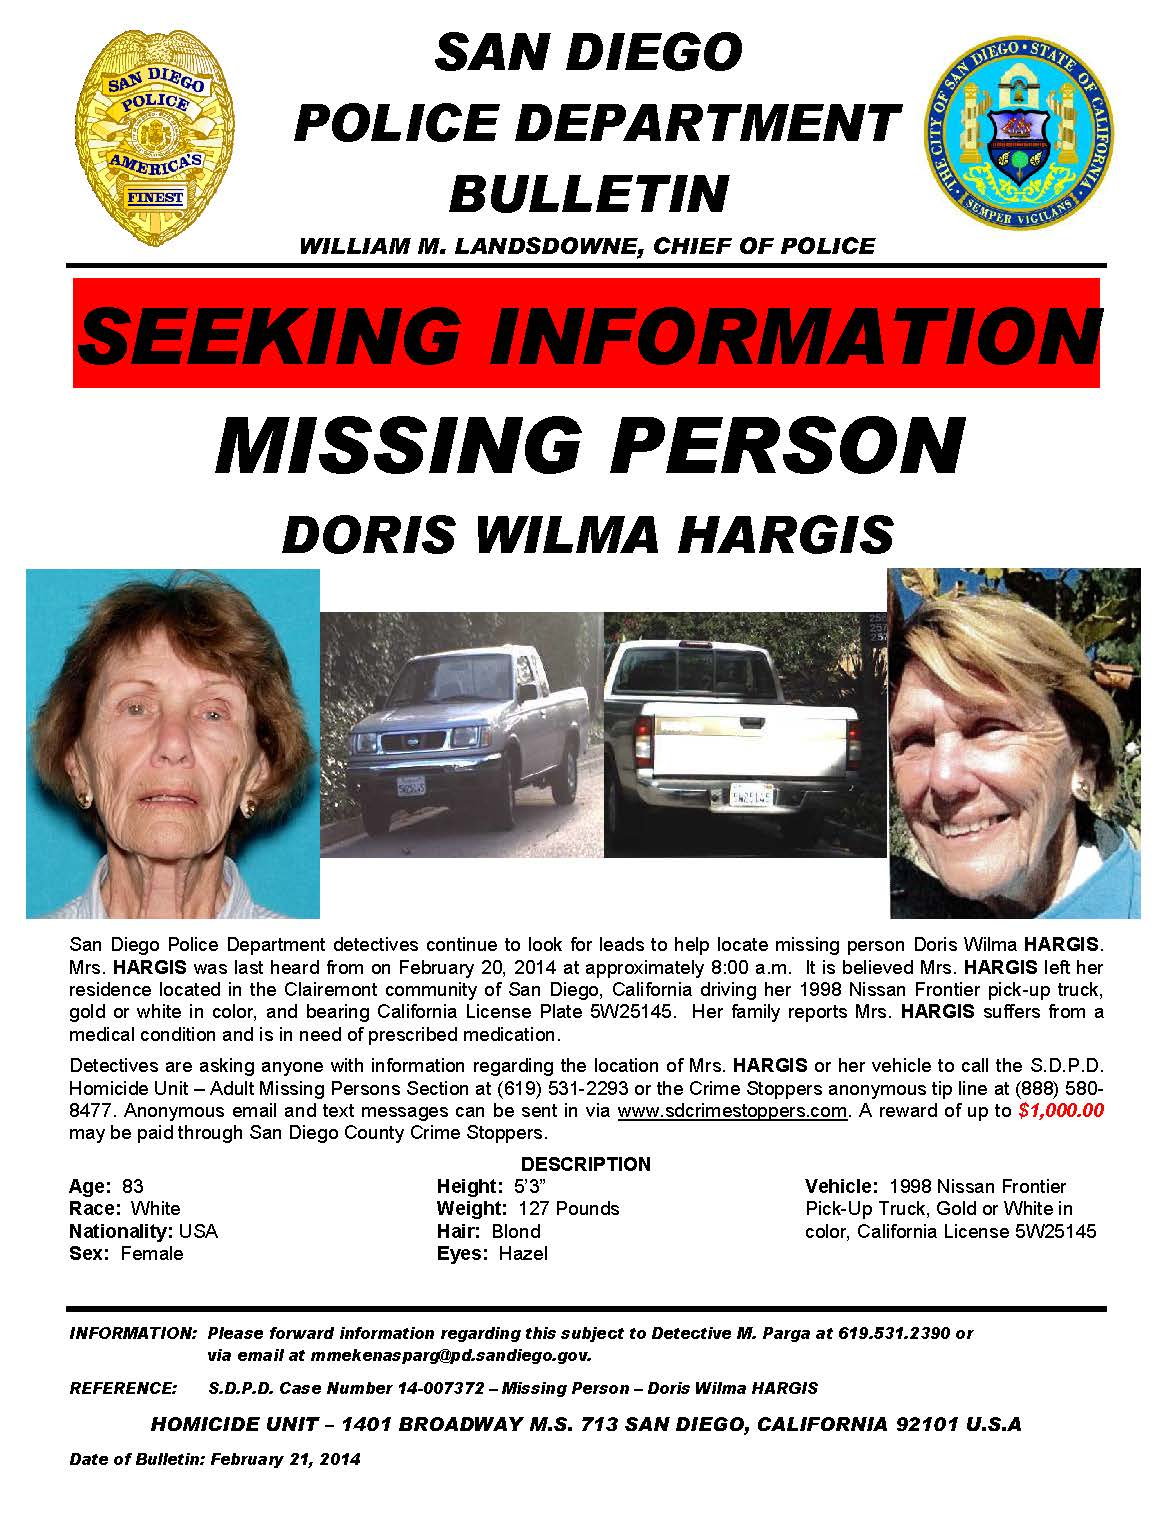 Bulletin - S.D.P.D. Case Number 14-007372 - Missing Person - Doris Wilma HARGIS - February 21, 2014